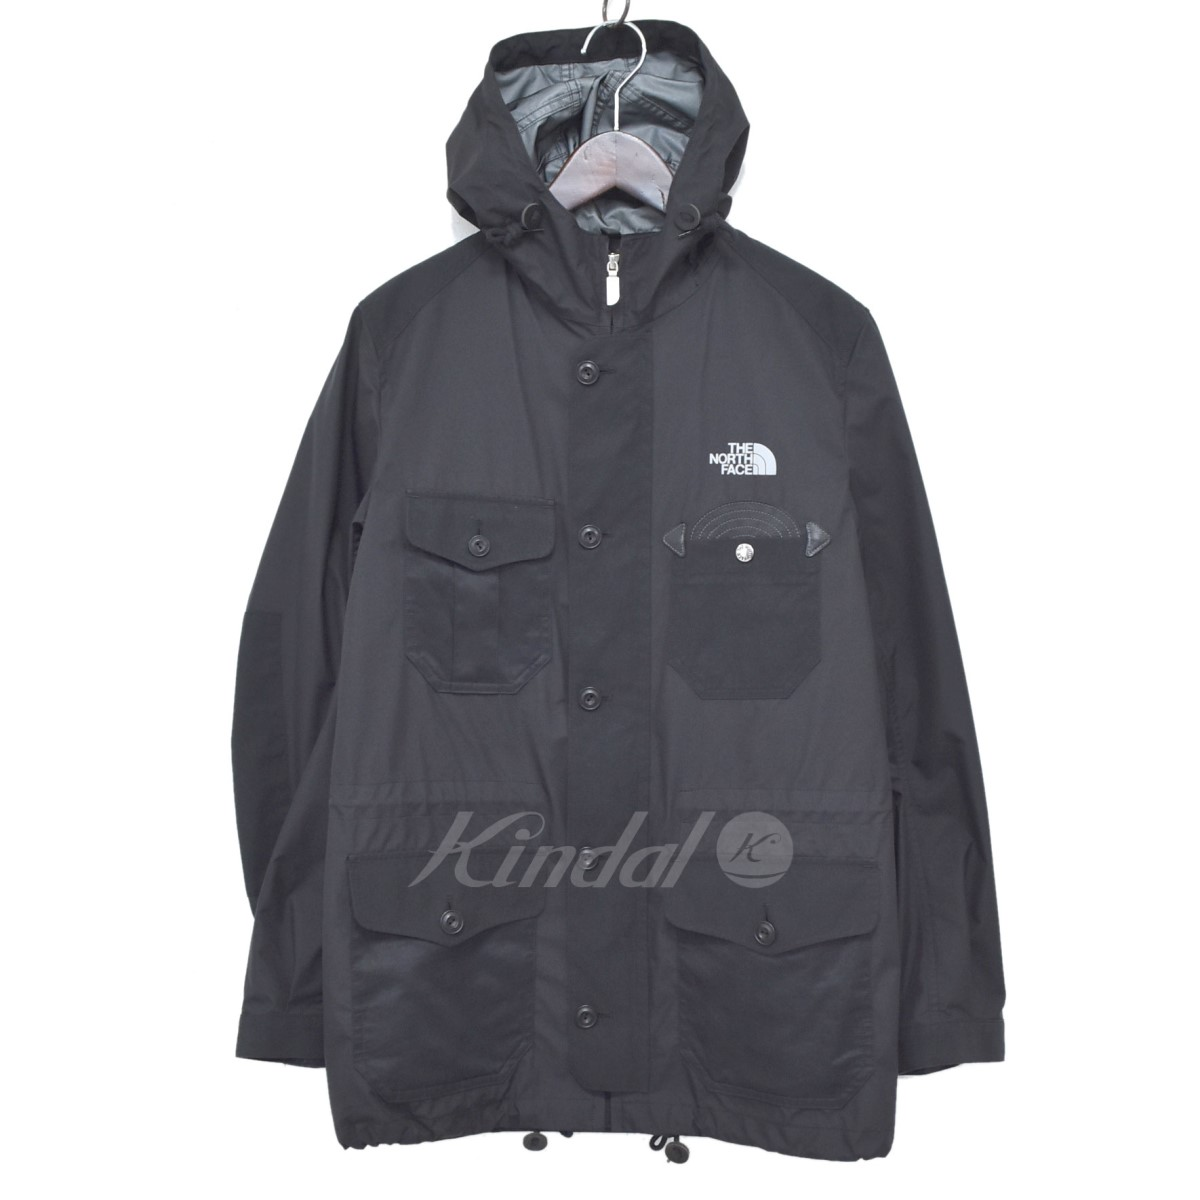 【中古】eye JUNYA WATANABE CdG MAN × THE NORTH FACE 15SS マウンテンパーカー 【送料無料】 【279201】 【KIND1550】